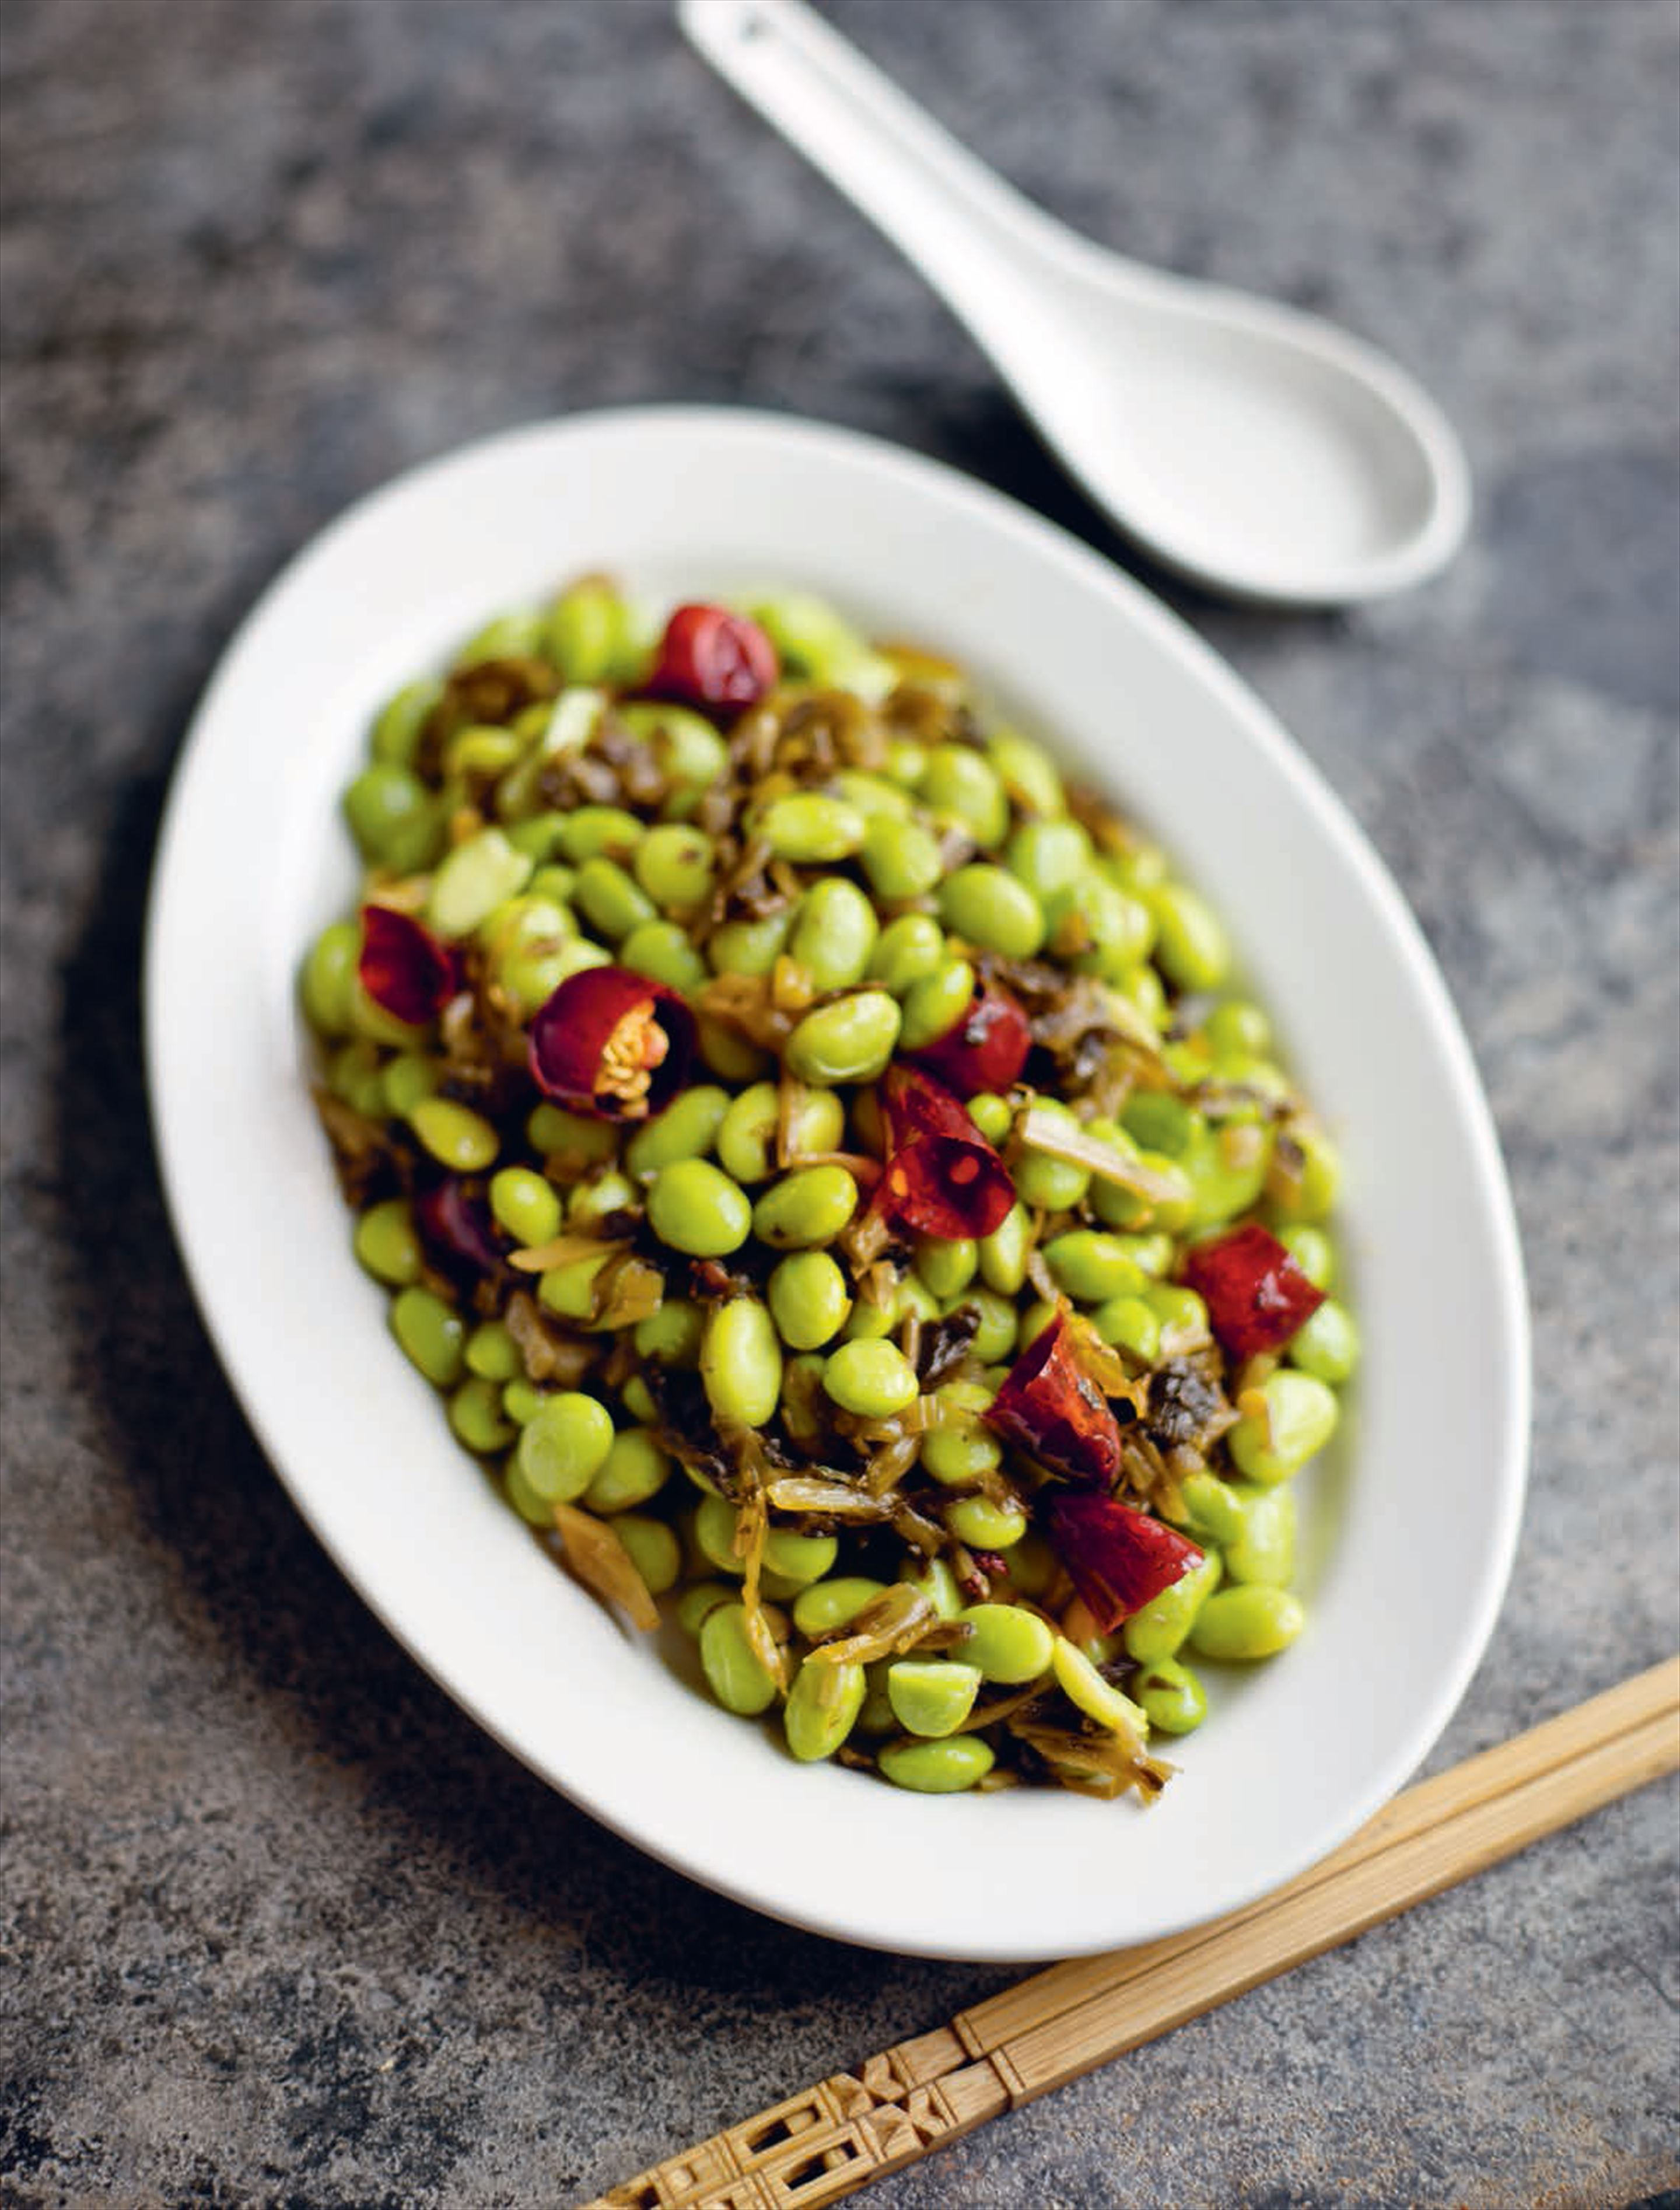 Stir-fried green soy beans with snow vegetable